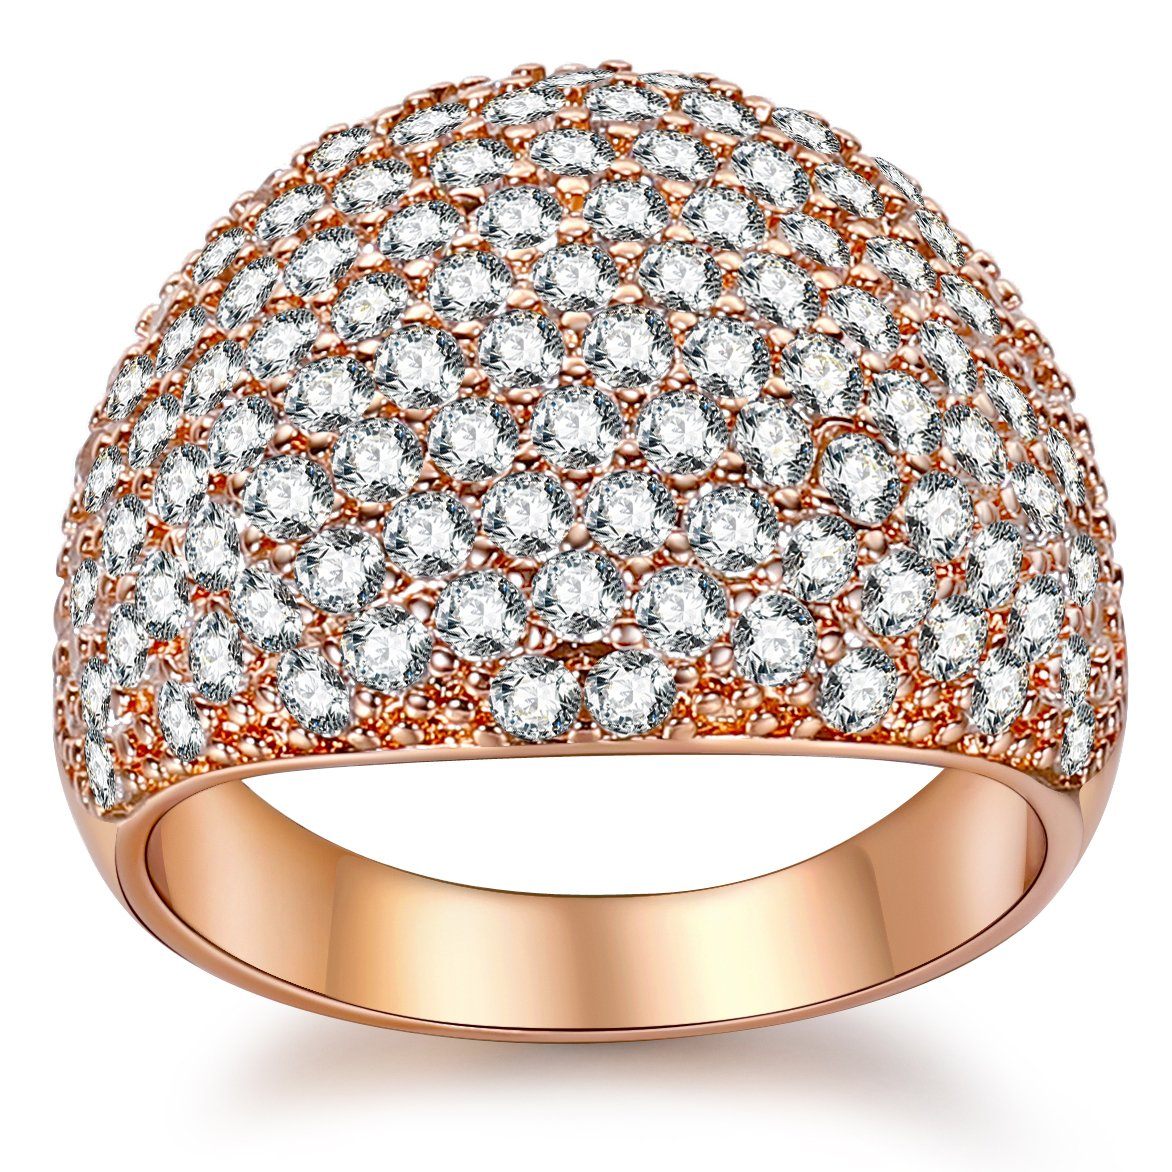 White Diamond Accent Dome Ring - Cluster Cubic Zirconia Paved Statement Wide Bands Size 5-11 (Rose Gold, 6)